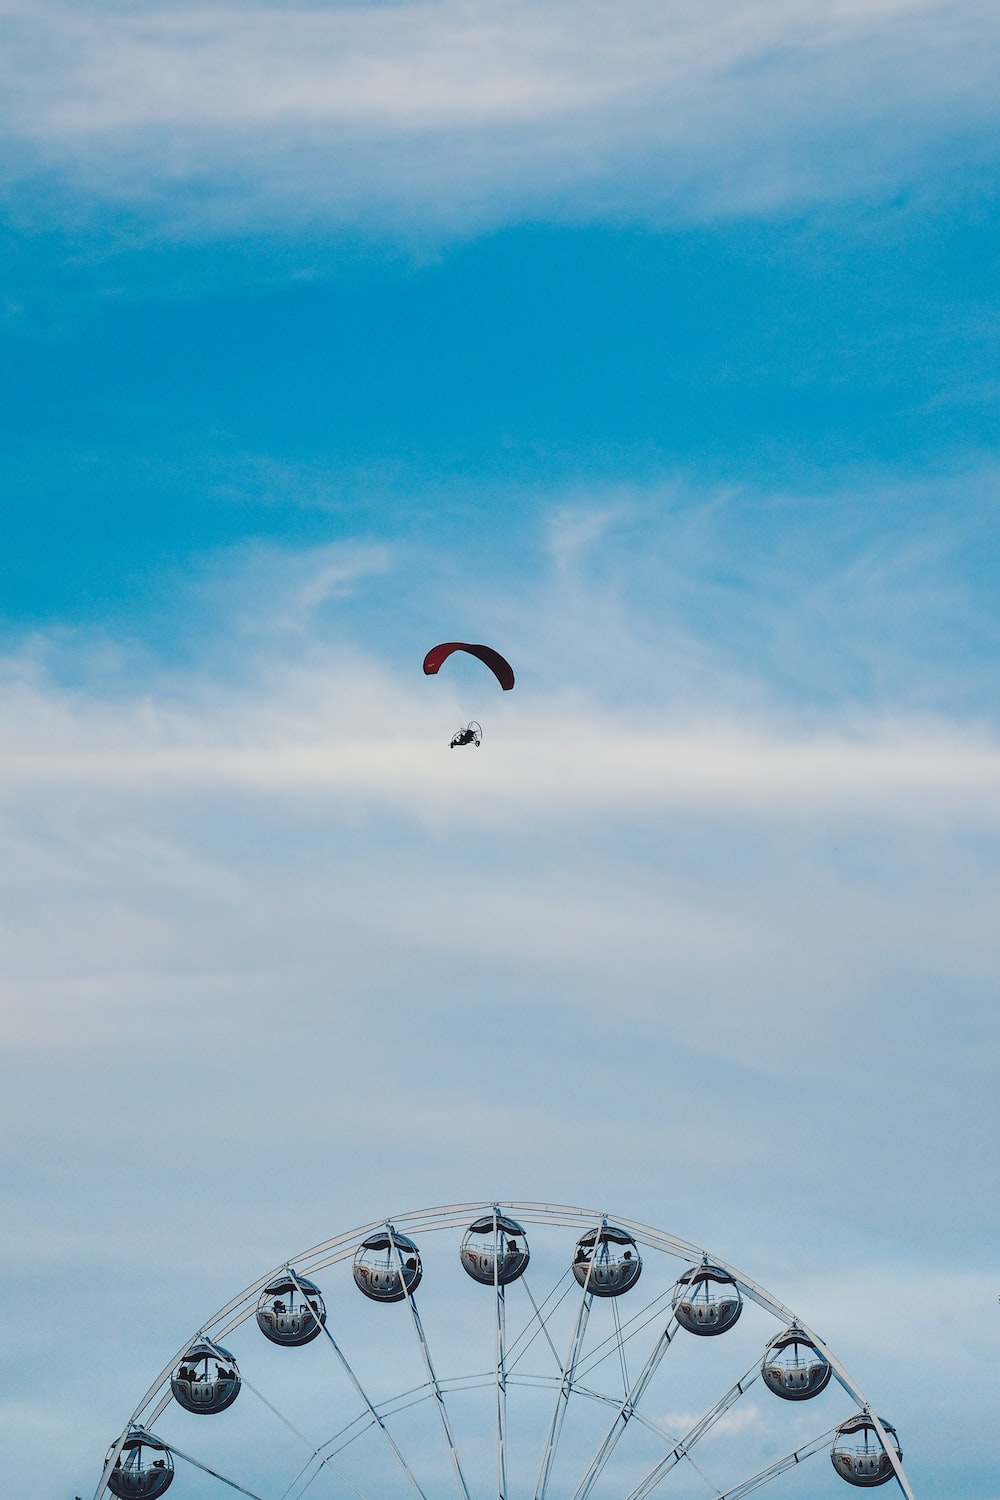 aerial photography of person parachuting above ferris wheel